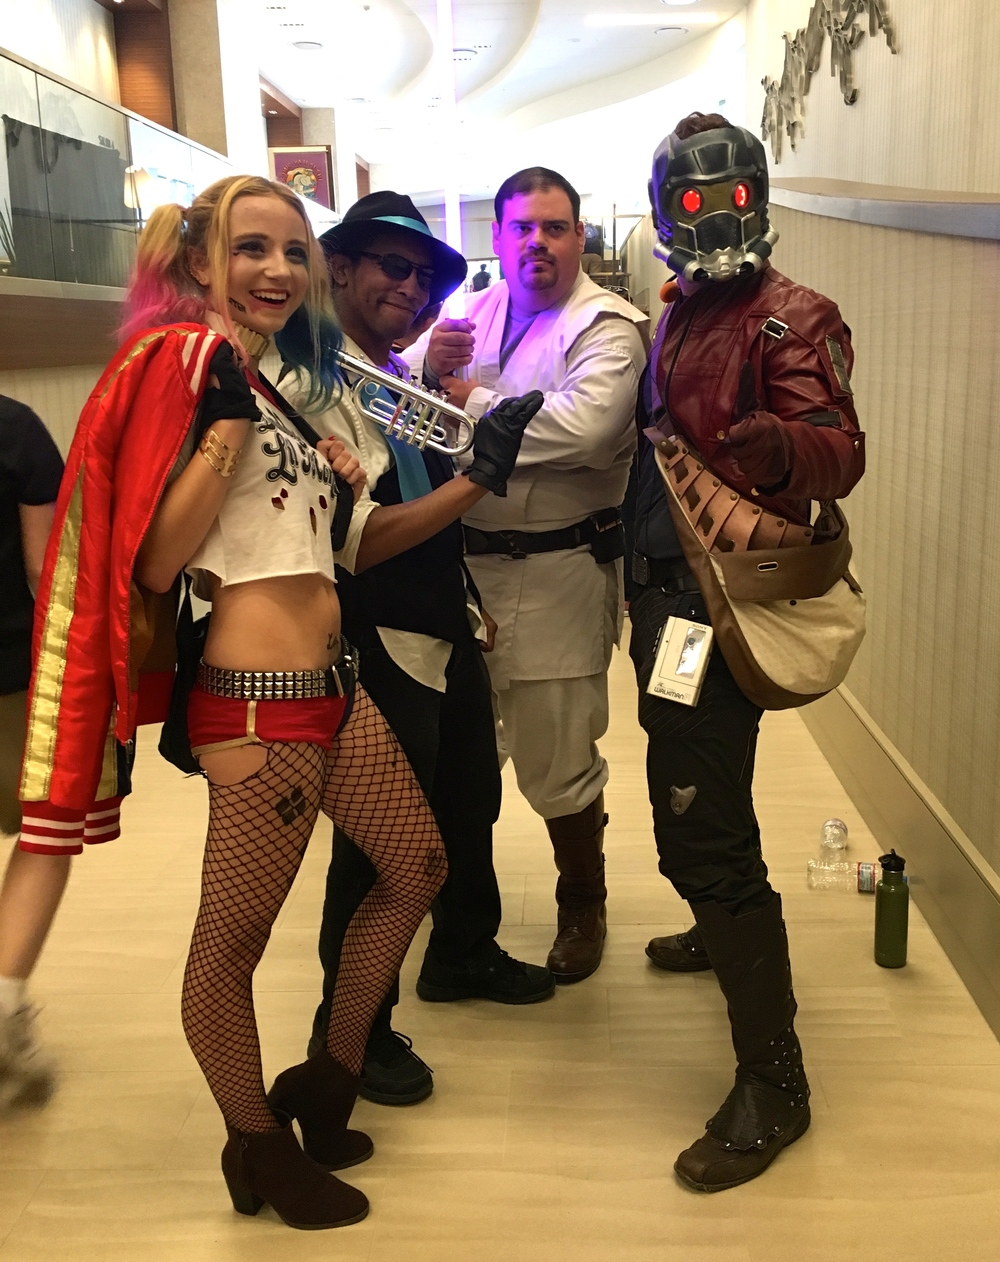 Some pretty cool cosplayers I snapped a pic of in the lobby of the hotel nearby. Gotta love that Star-Lord costume!